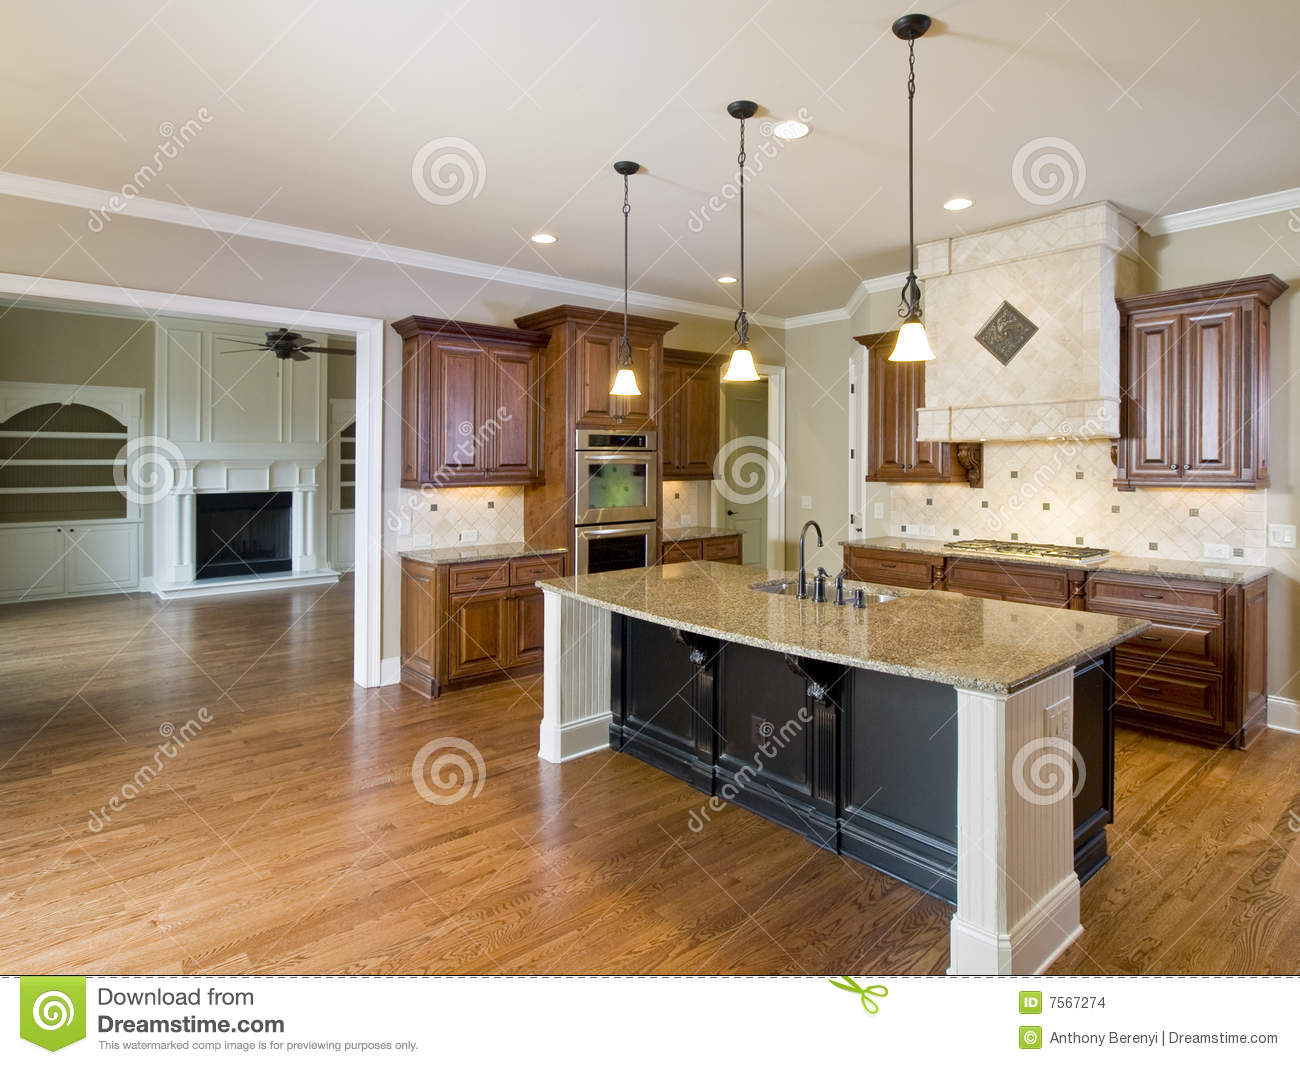 Luxury home interior kitchen and living room stock photo for Cuisines americaines de luxe